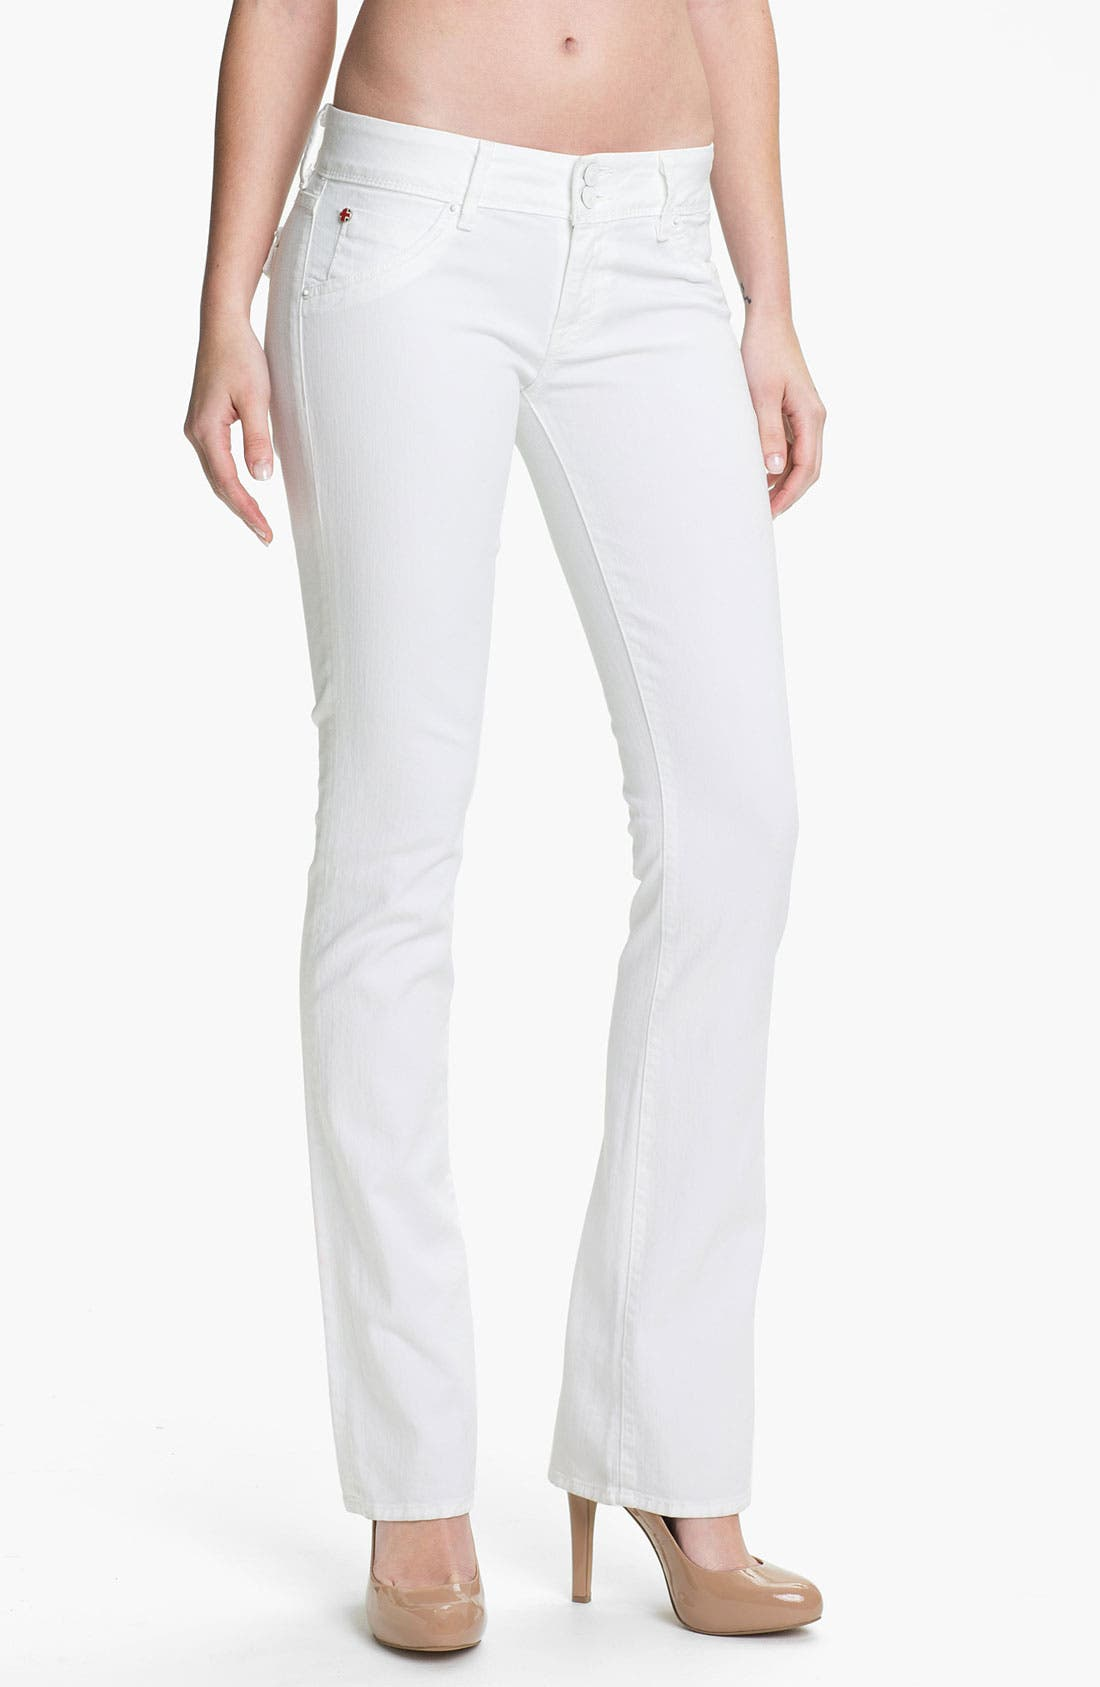 Alternate Image 1 Selected - Hudson Jeans 'Beth' Baby Bootcut Jeans (White)